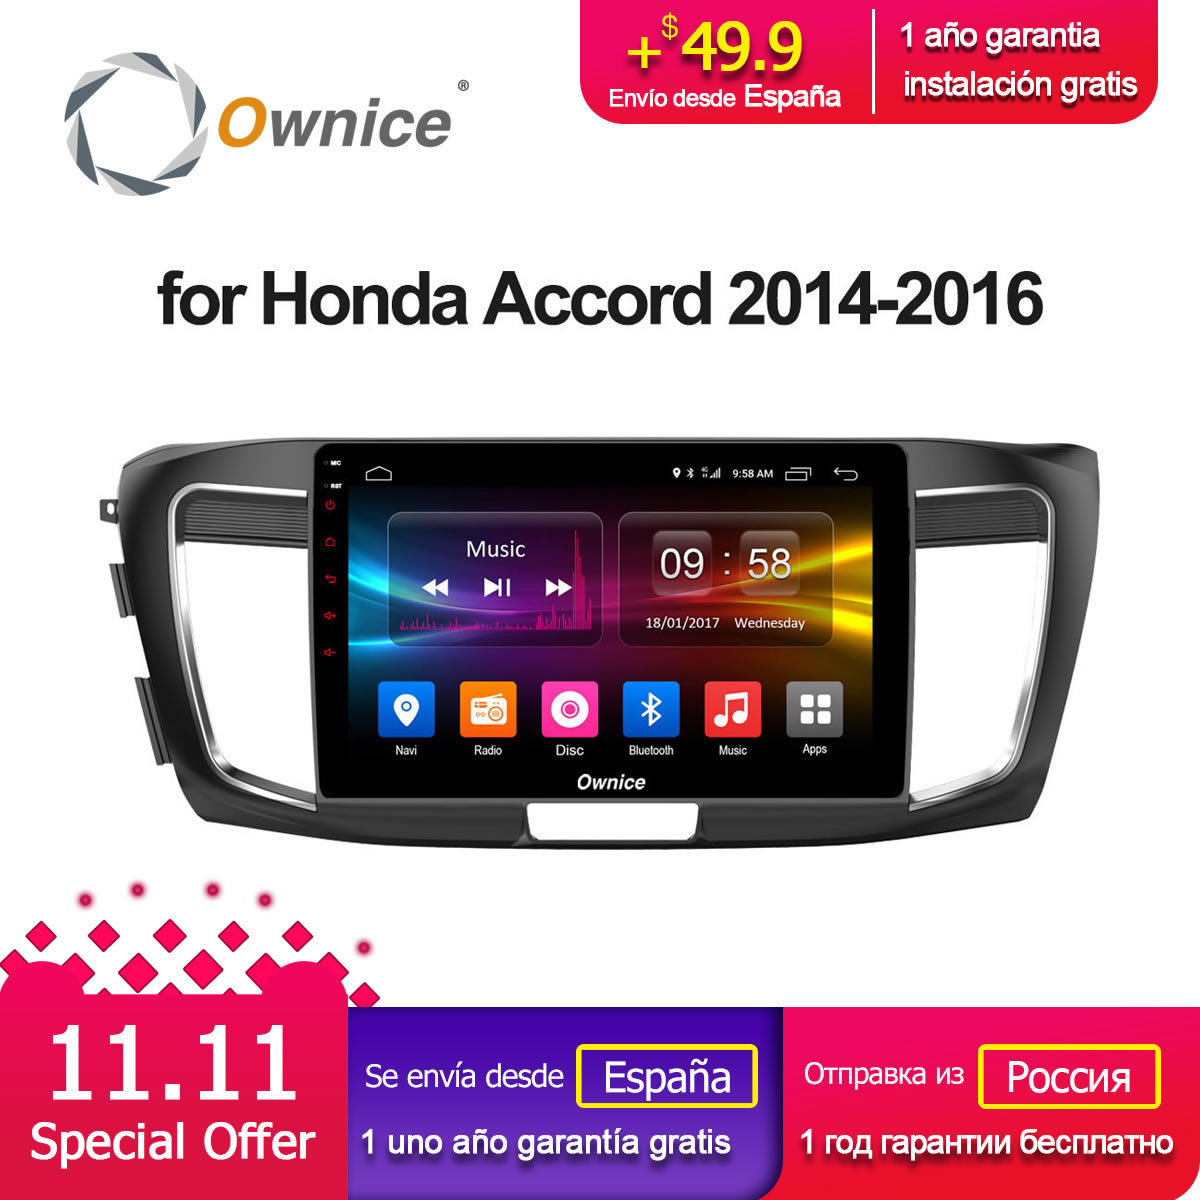 Ownice C500+ G10 10.1 Android 8.1 OS Car radio player GPS Navi for HONDA Accord 2014 2015 2016 with 2GB RAM support DVD 4G ownice c500 4g sim lte octa 8 core android 6 0 for kia ceed 2013 2015 car dvd player gps navi radio wifi 4g bt 2gb ram 32g rom